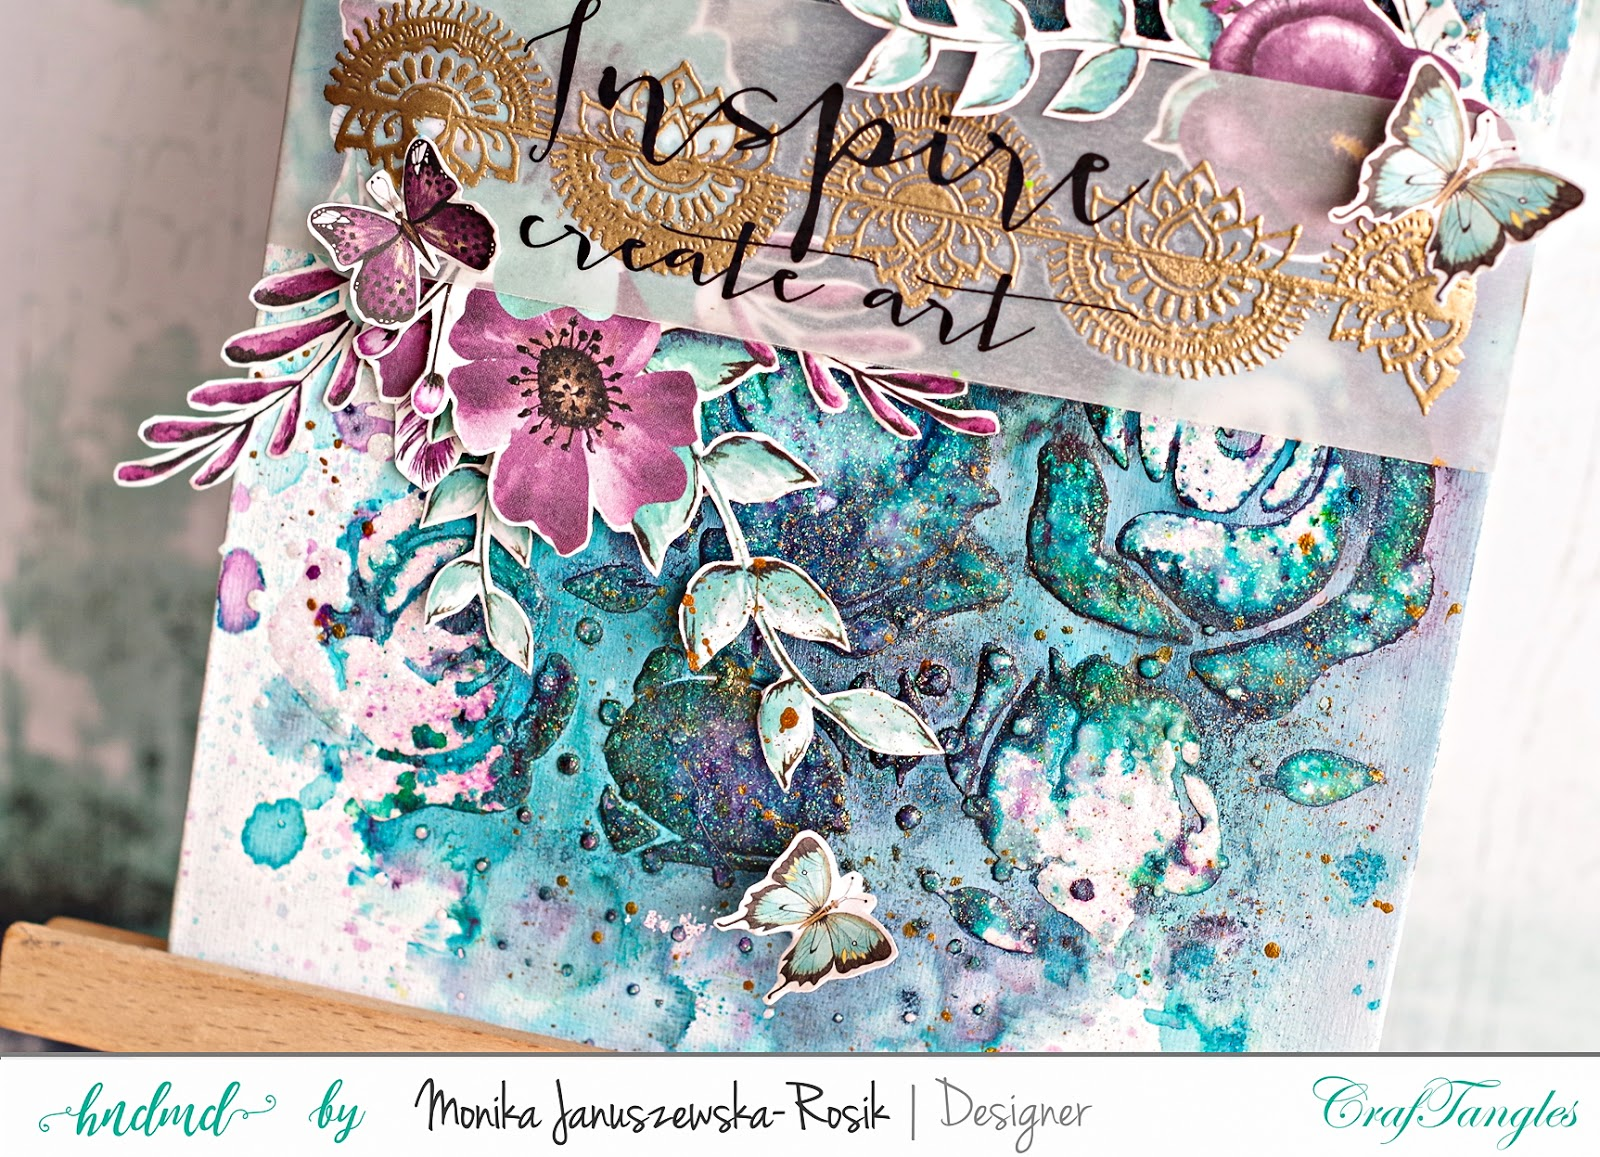 Mixed media background with CrafTangles stencils 5